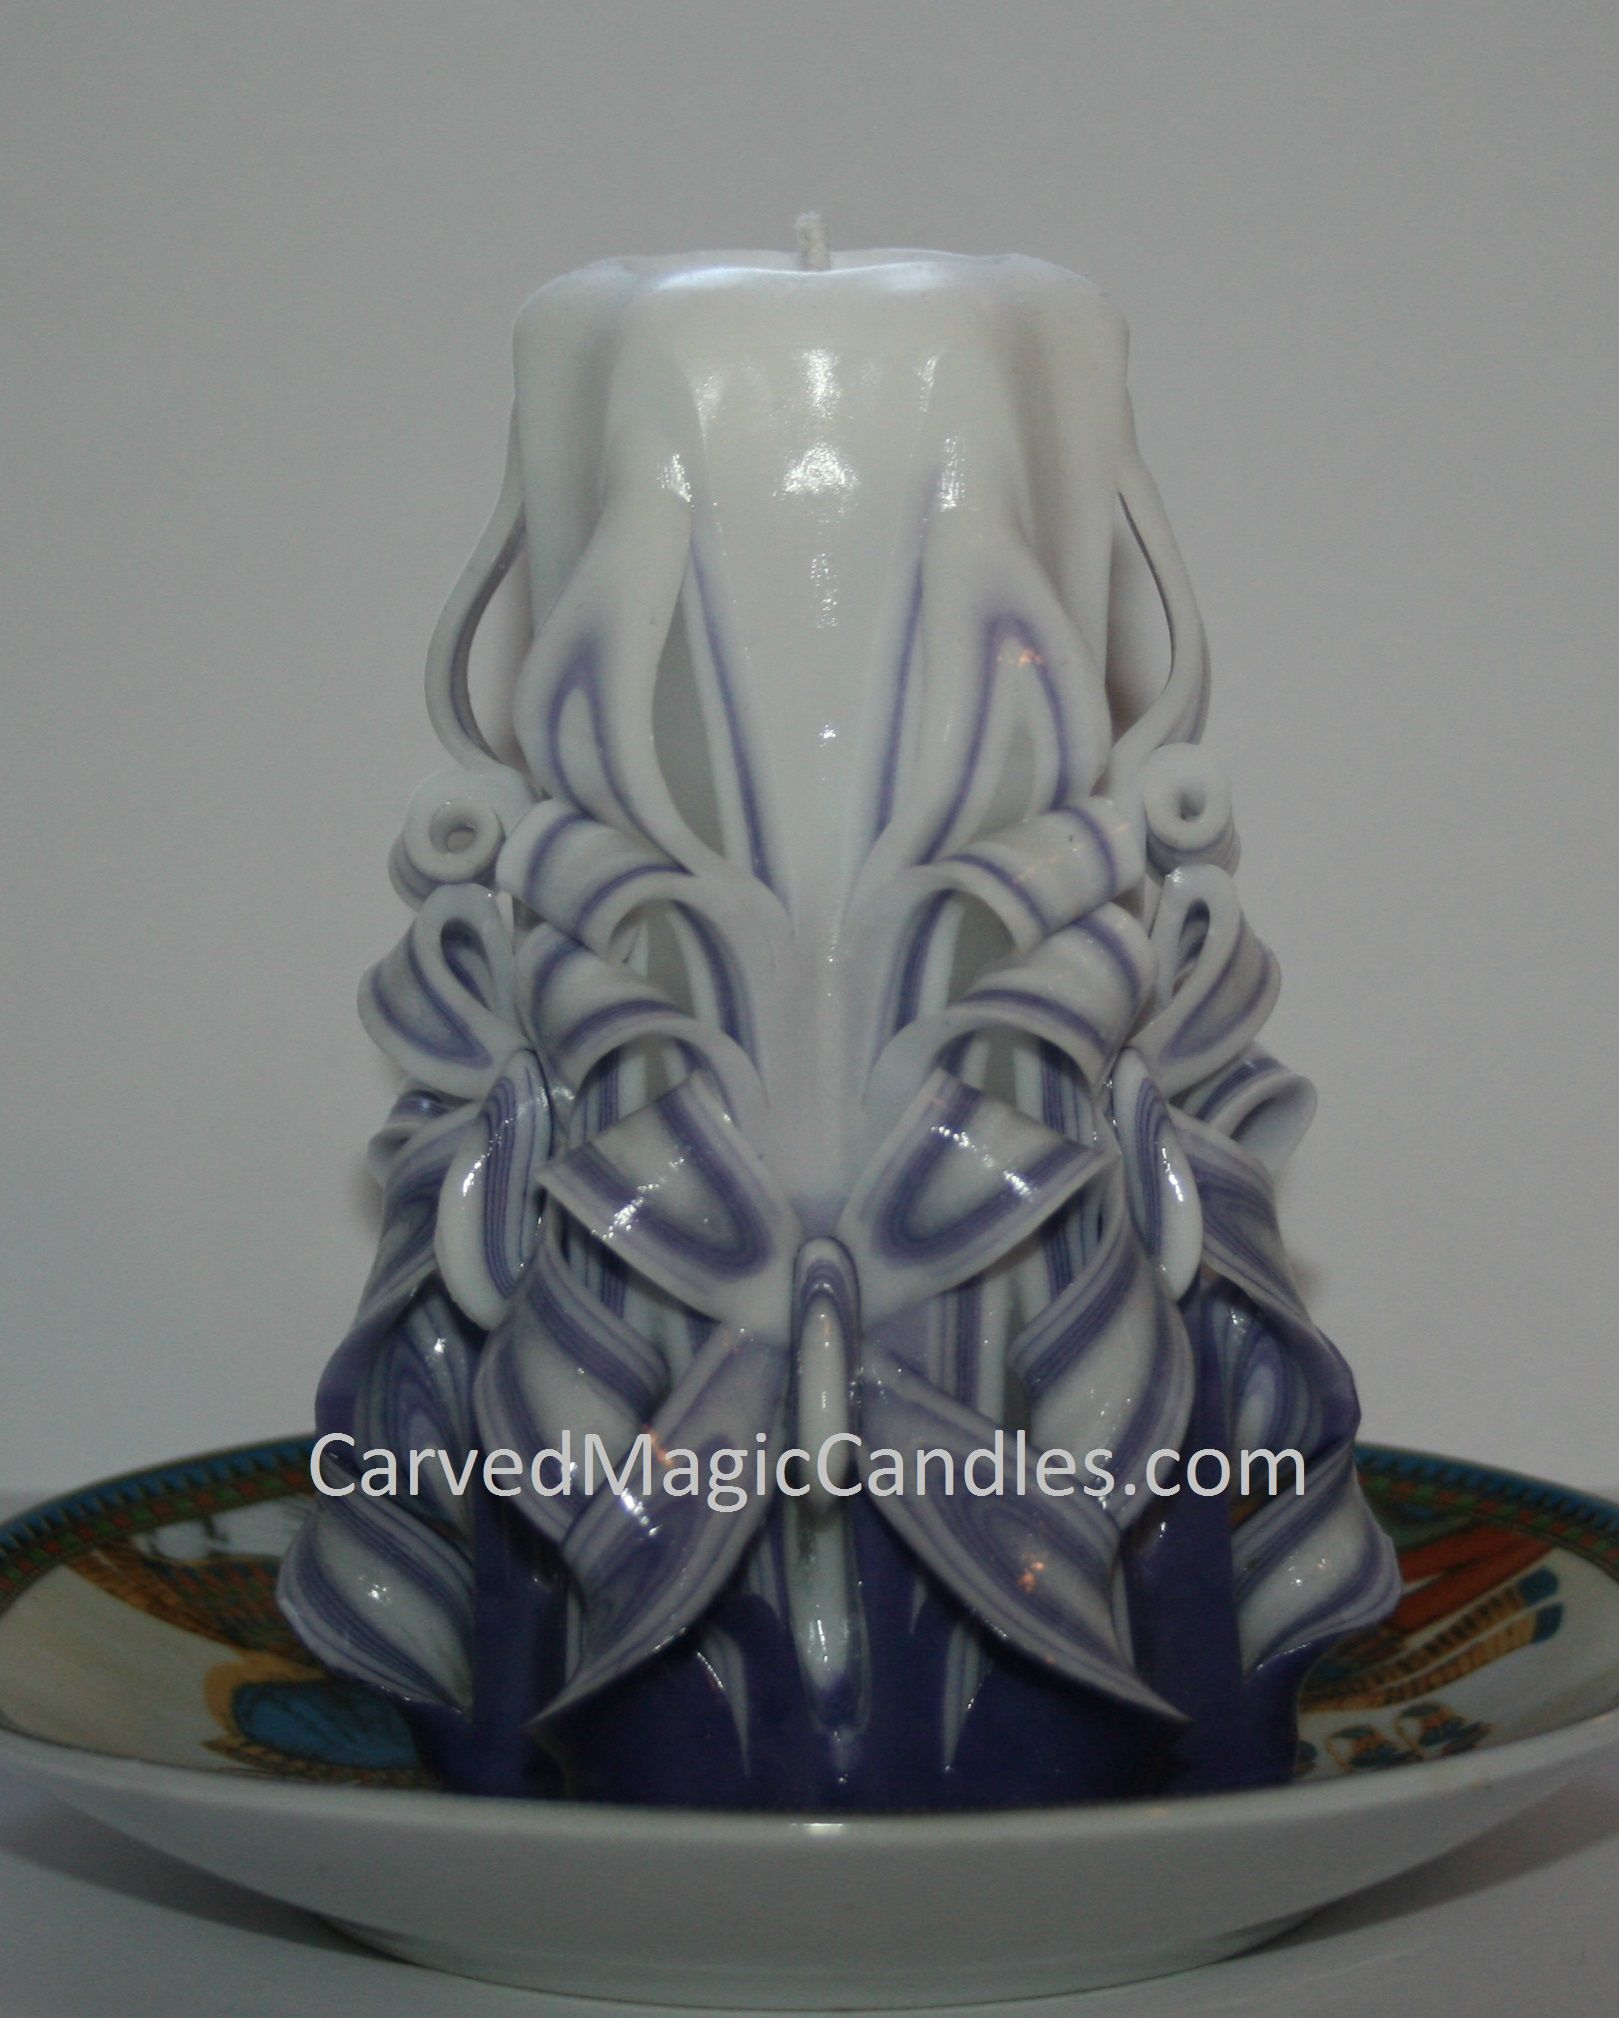 Handmade carved candles